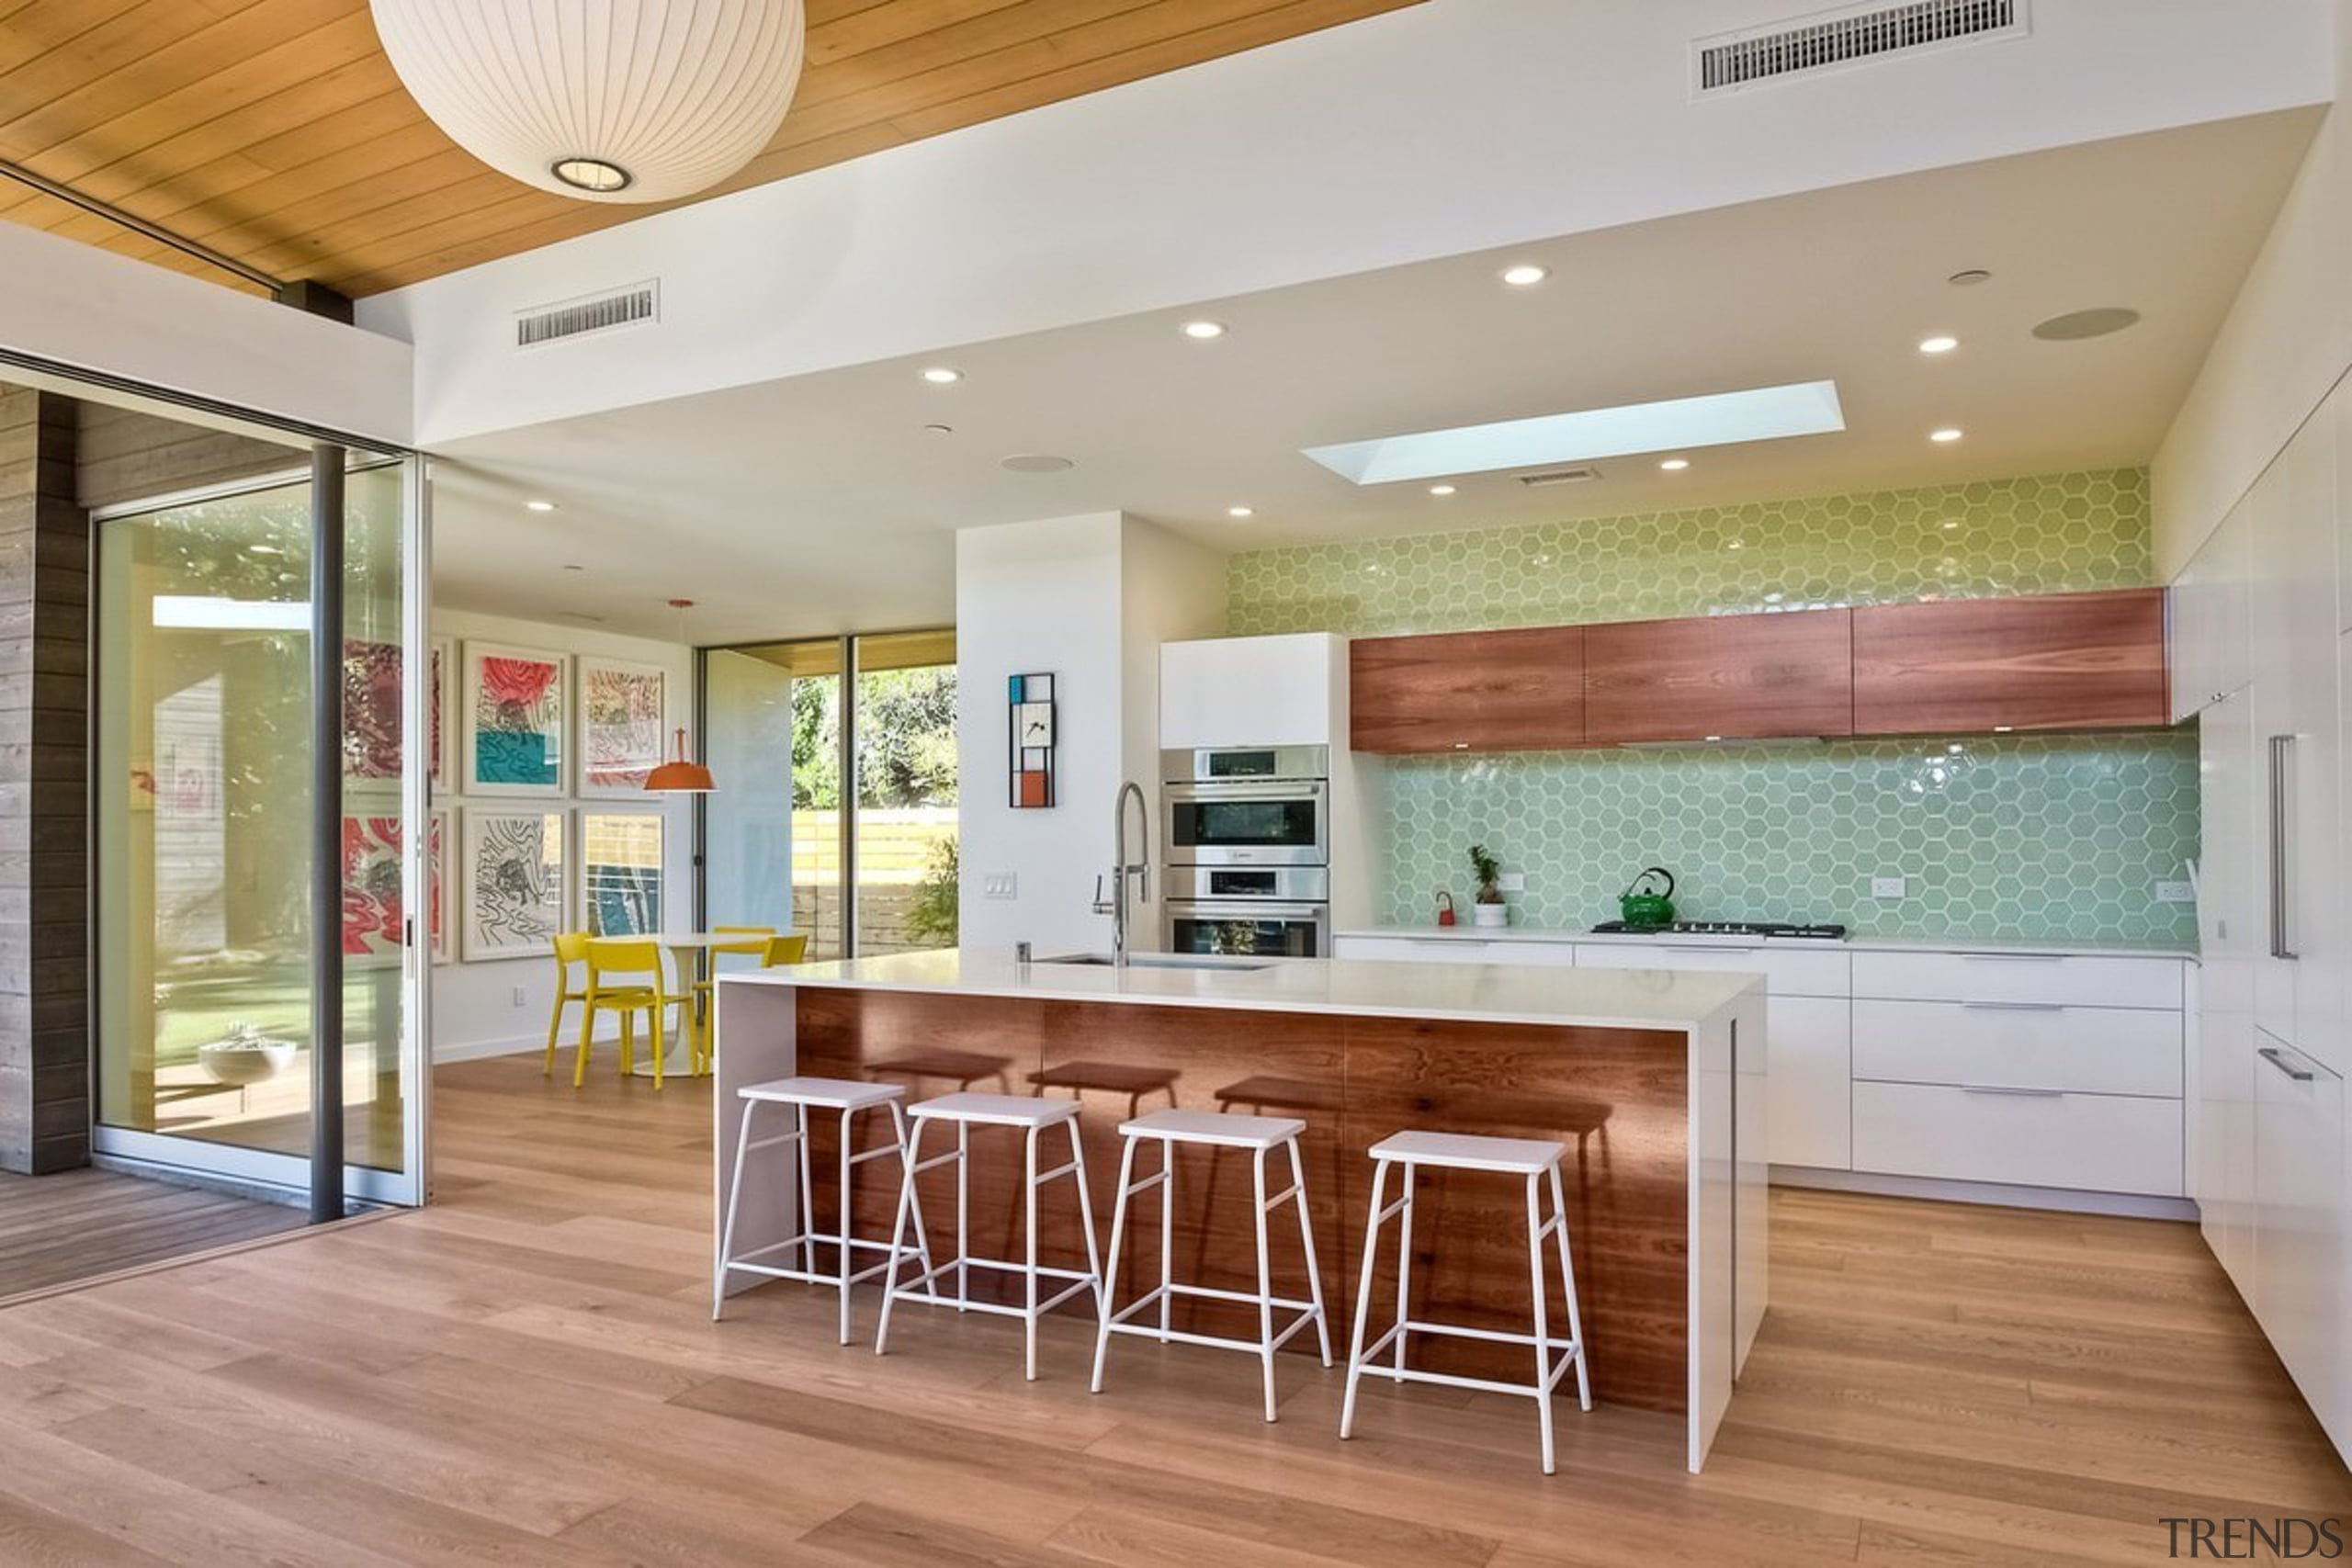 Architect: lloyd russell, aiaPhotography by Darren Bradley ceiling, countertop, floor, flooring, hardwood, house, interior design, kitchen, real estate, wood flooring, gray